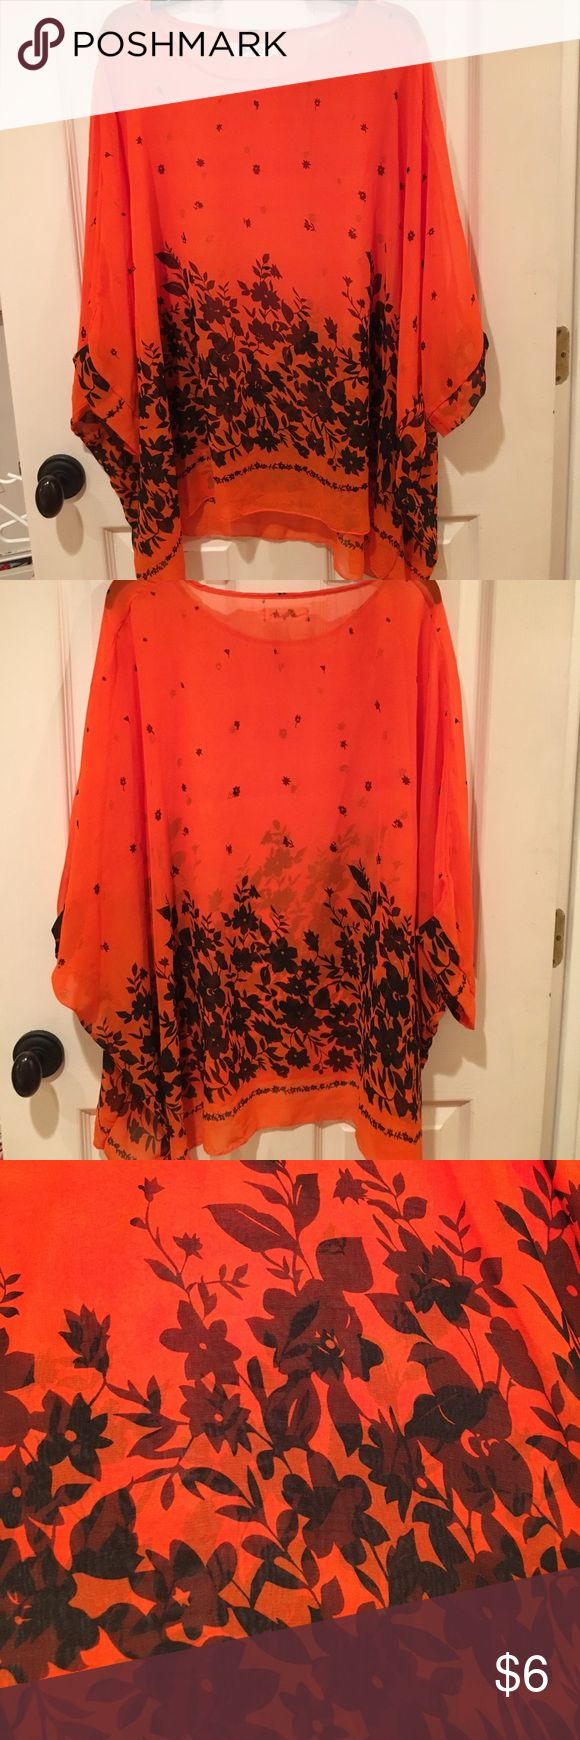 Bat wing sheer blouse. A sheer and flowing blouse with mid-length bat wing sleeves. Size Large. Tops Blouses